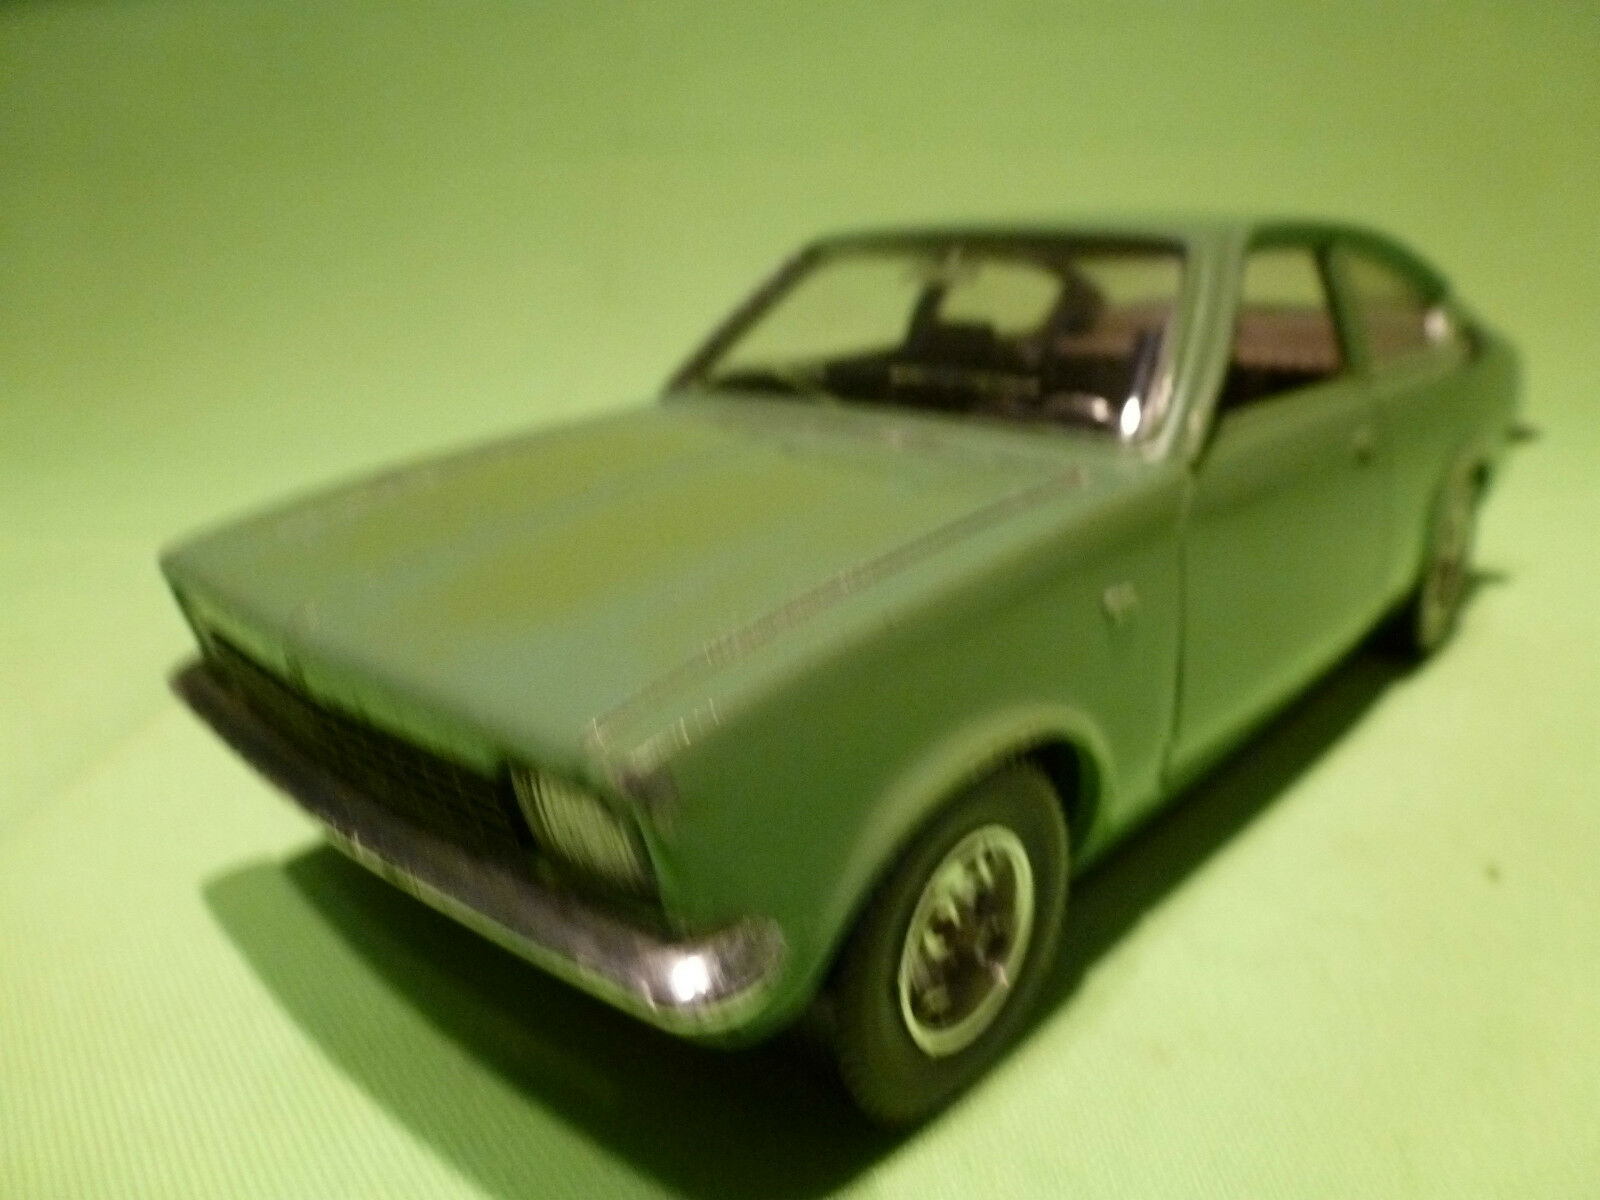 BBURAGO 0119 OPEL KADETT COUPE  - RARE SELTEN - GOOD CONDITION